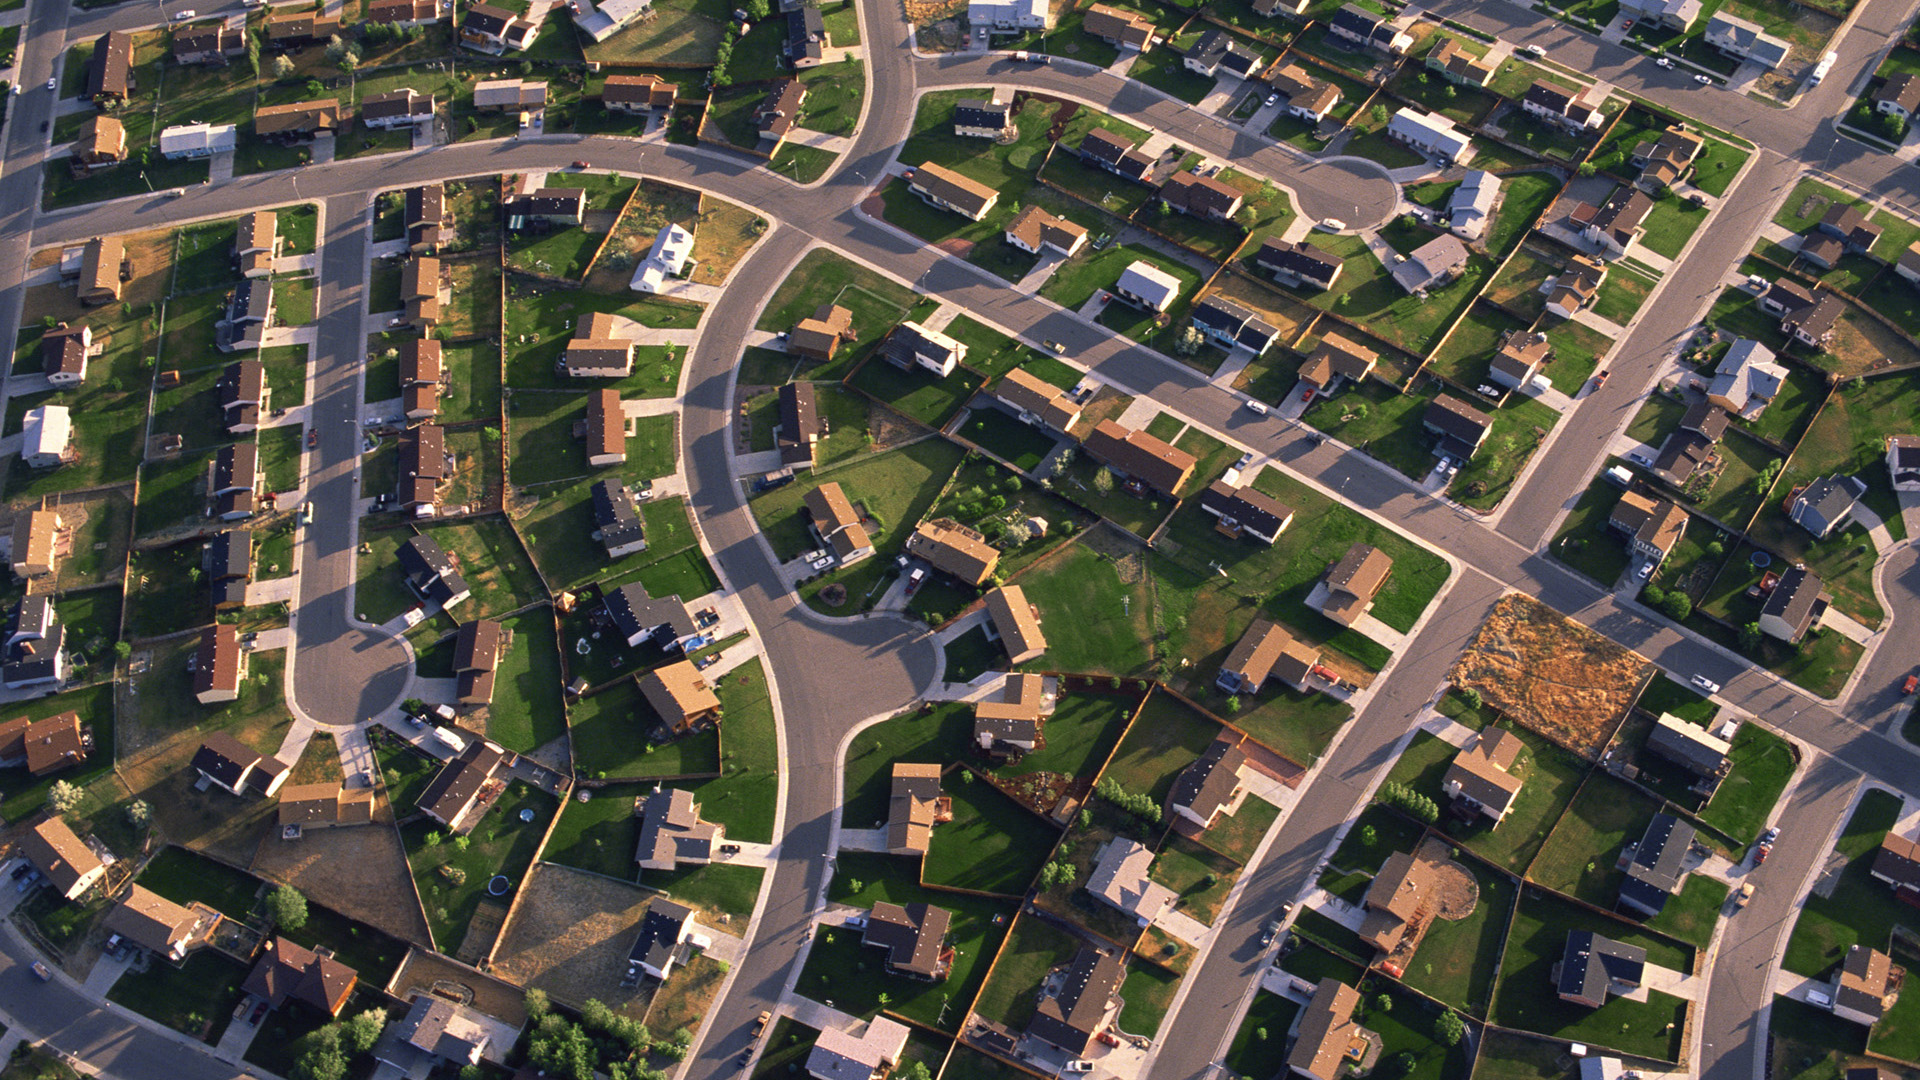 Aerial image of Billings housing development, key image